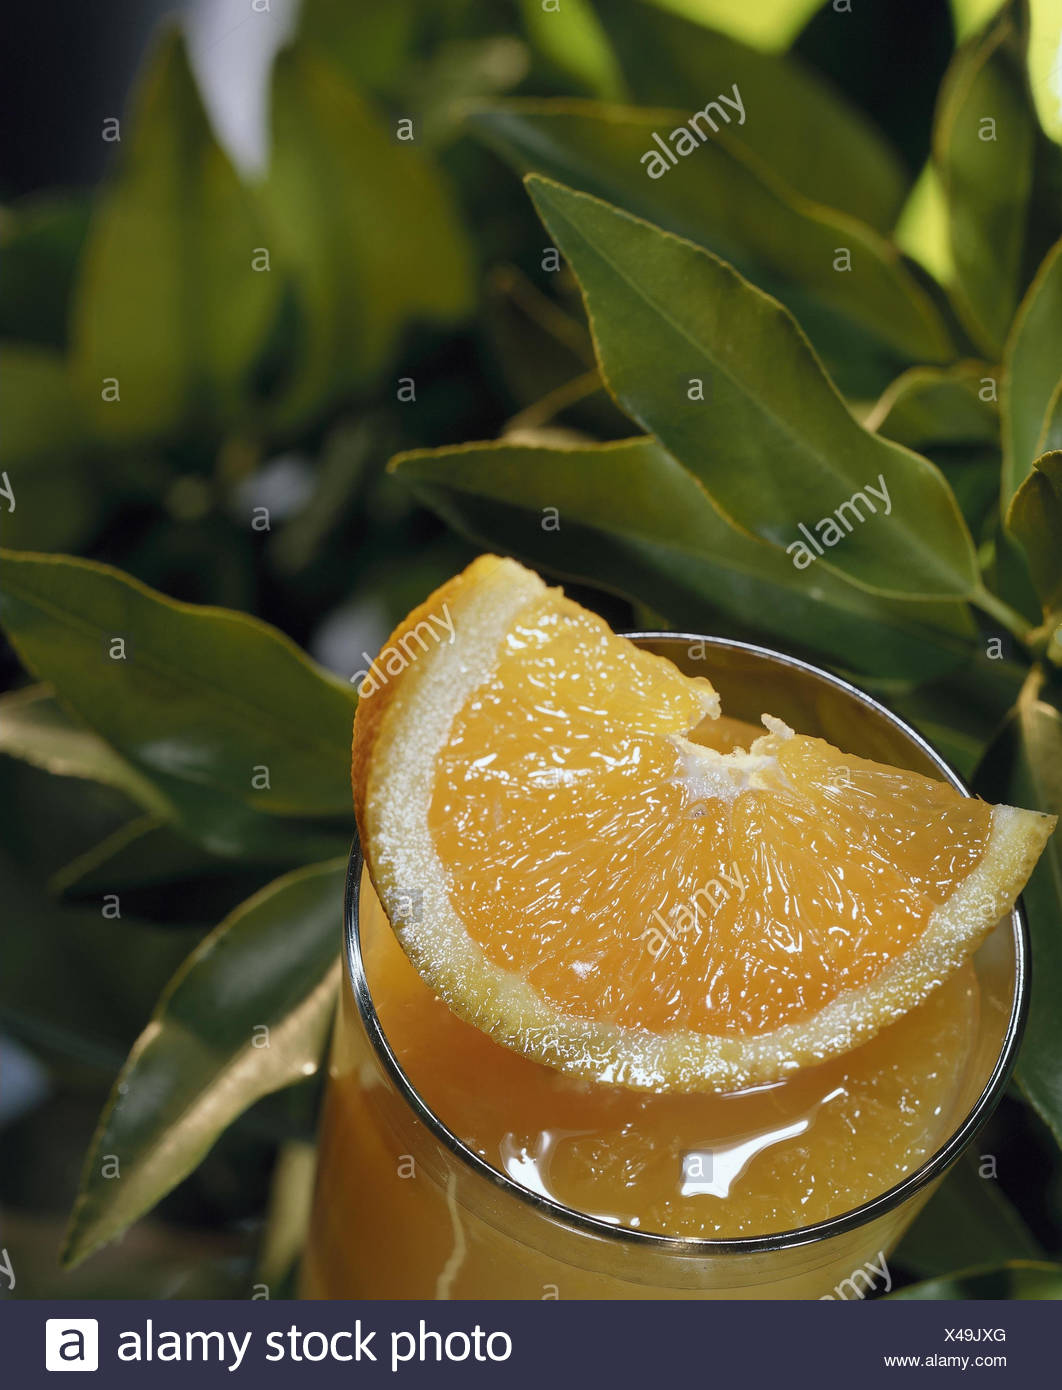 Glass, orange juice, Oragenspalte, leaves juice, fruit juice, fruit juice, orange juice, orange, Citrus sinensis, juice glass, drink, natural, alcohol-free, healthy, rich in vitamins, vitamins, leaves, long, juice, orange, slice of orange, detail, tropical fruit, refreshment, thirst-quenching, still life, object photography - Stock Image